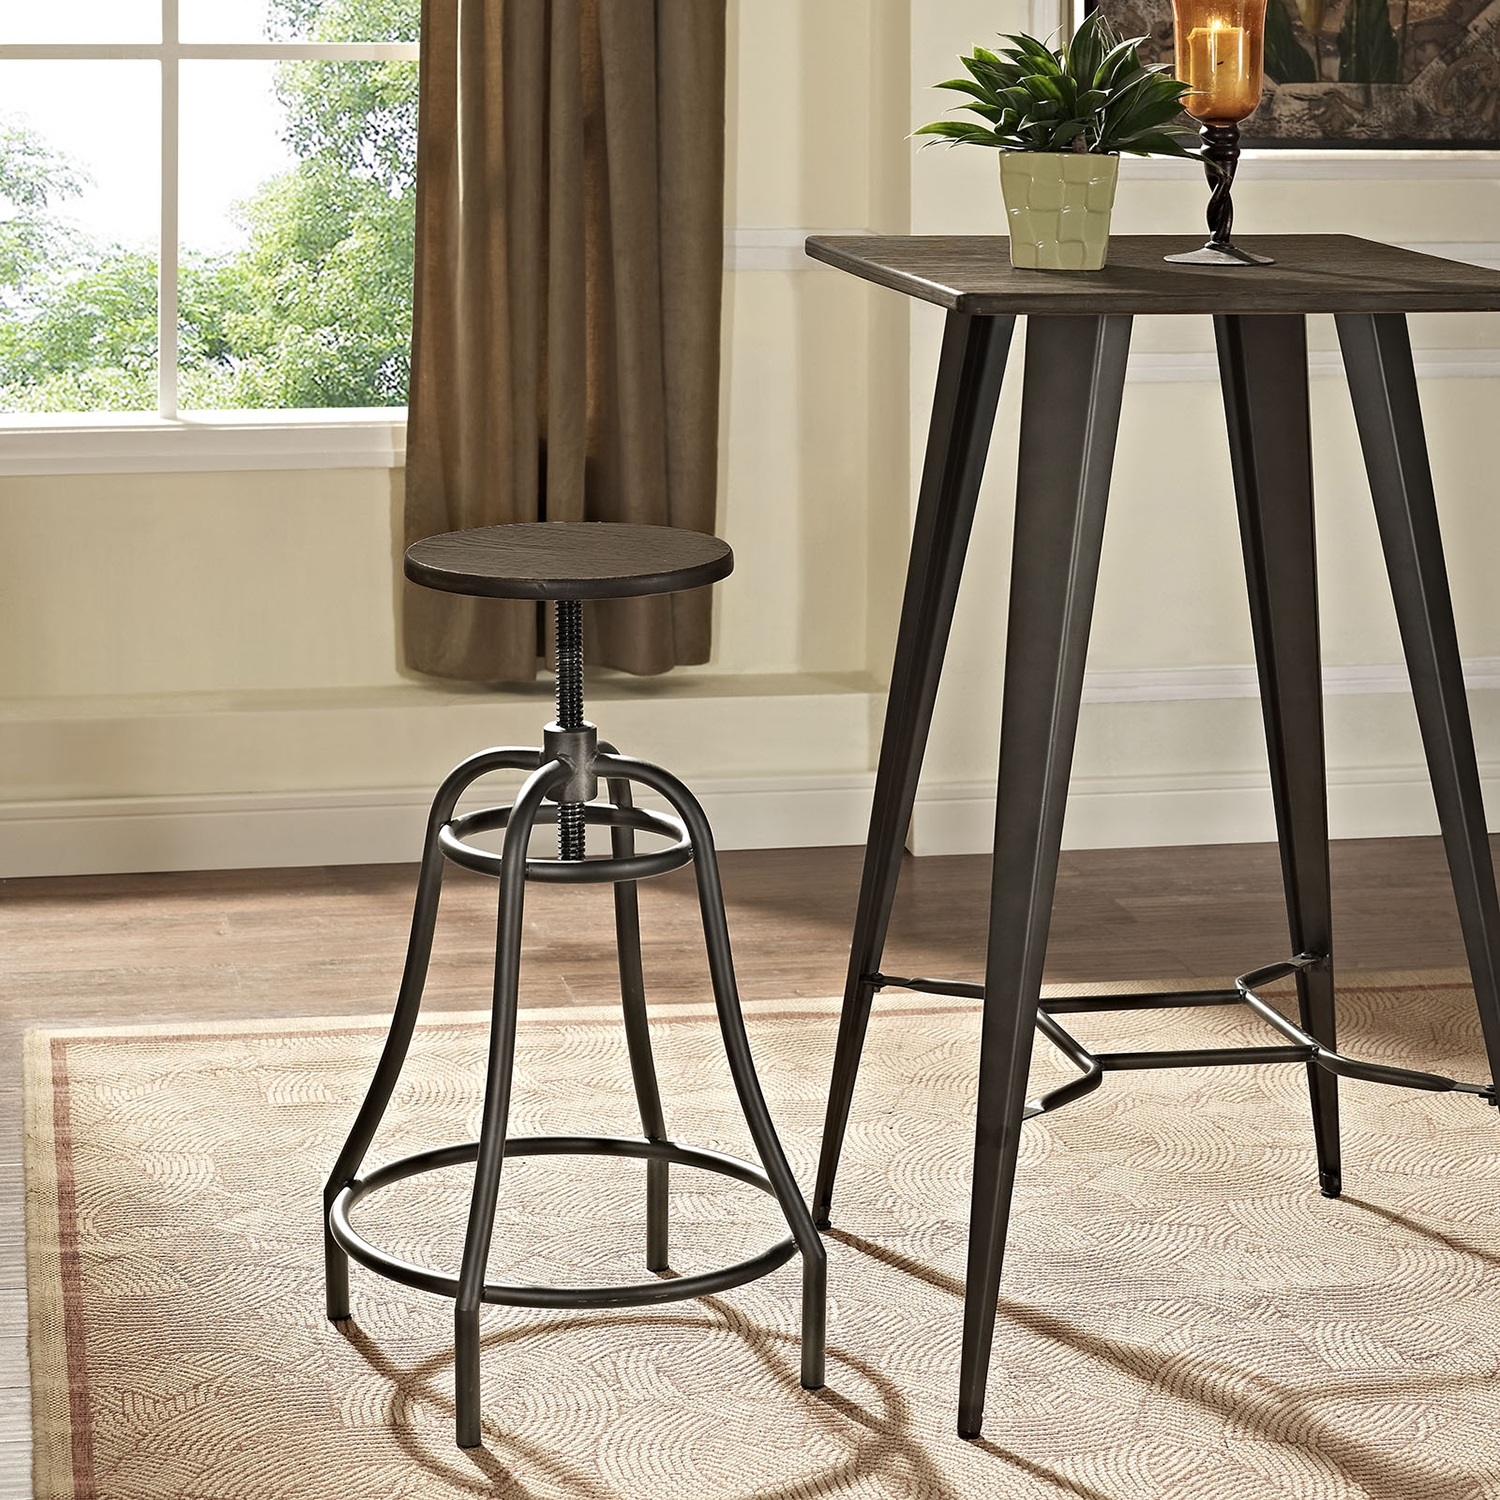 Toll Metal Bar Stool - Brown - EEI-2042-BRN